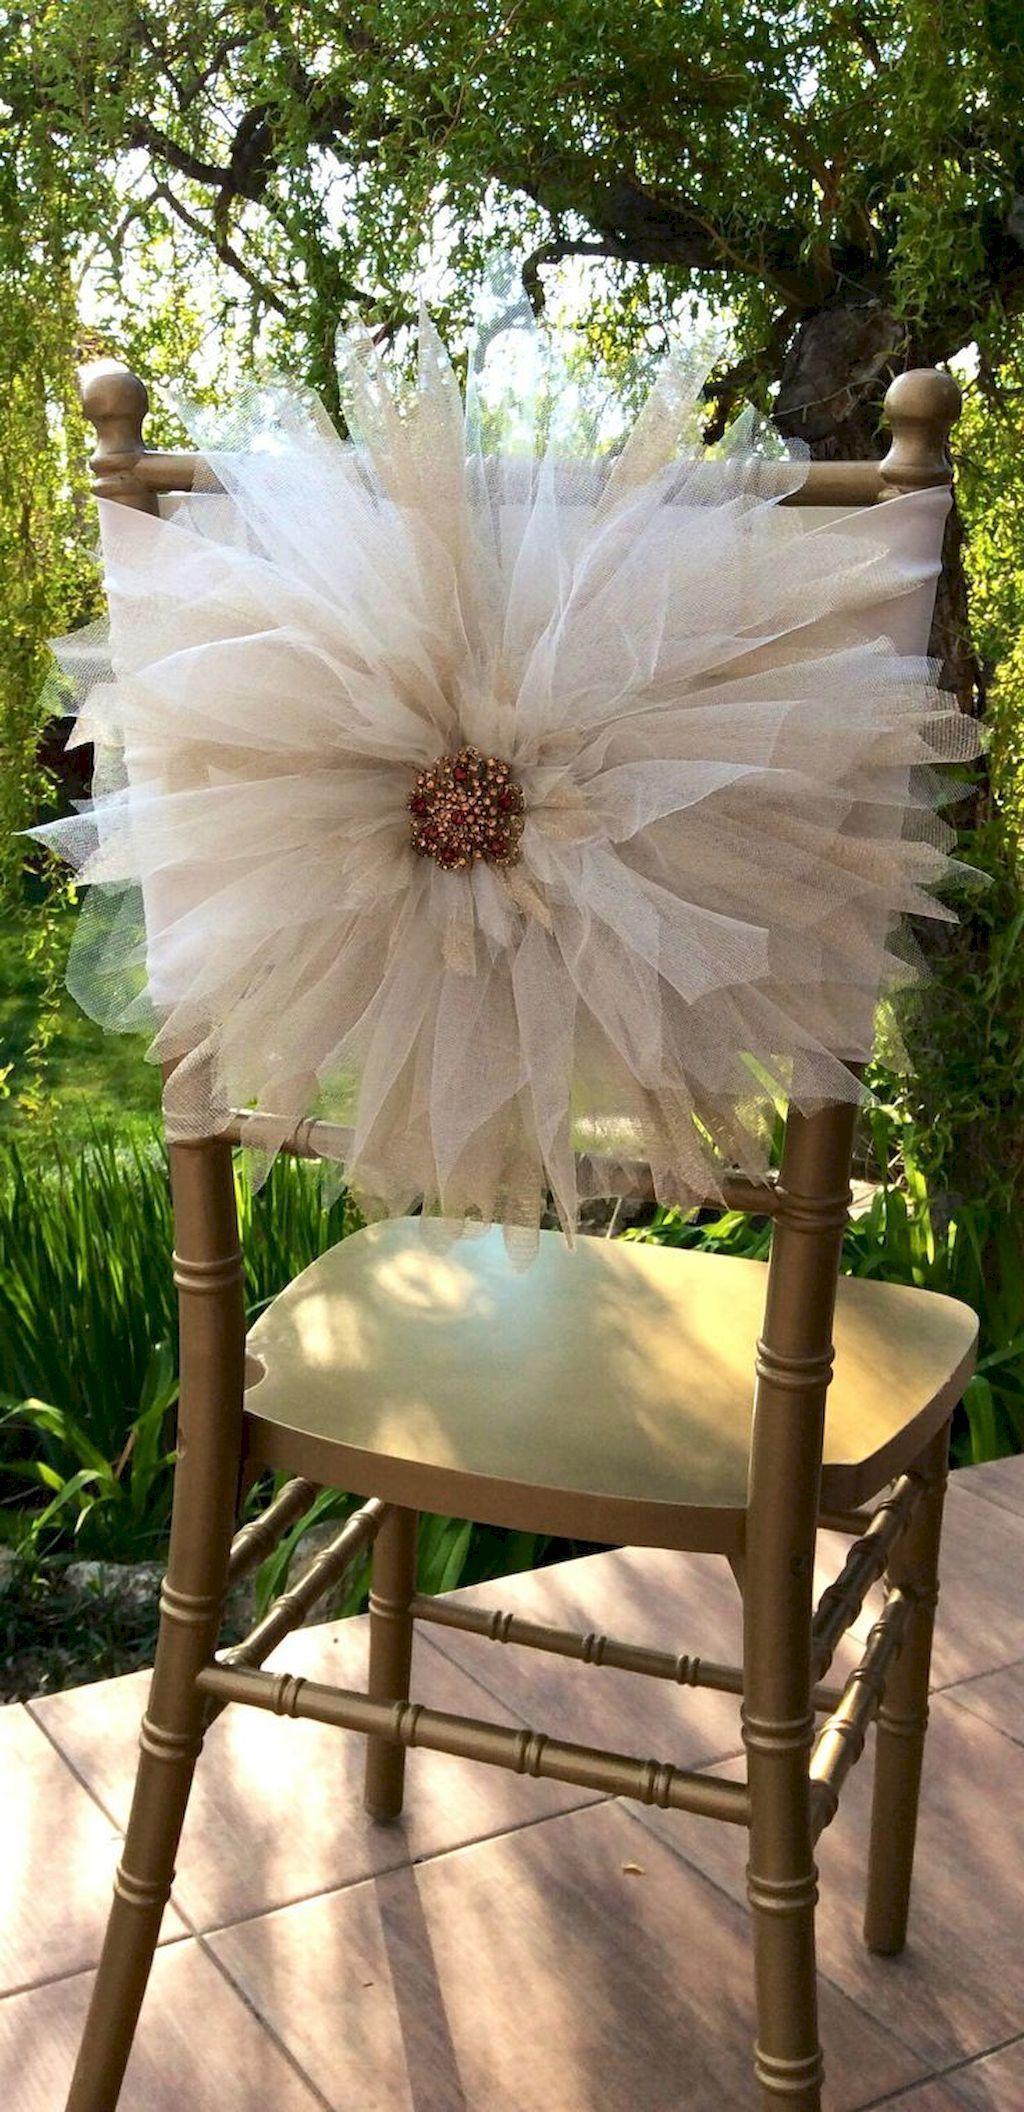 Awesome 85 awesome wedding chair decoration ideas for reception htt awesome 85 awesome wedding chair decoration ideas for reception httpsbitecloth junglespirit Image collections